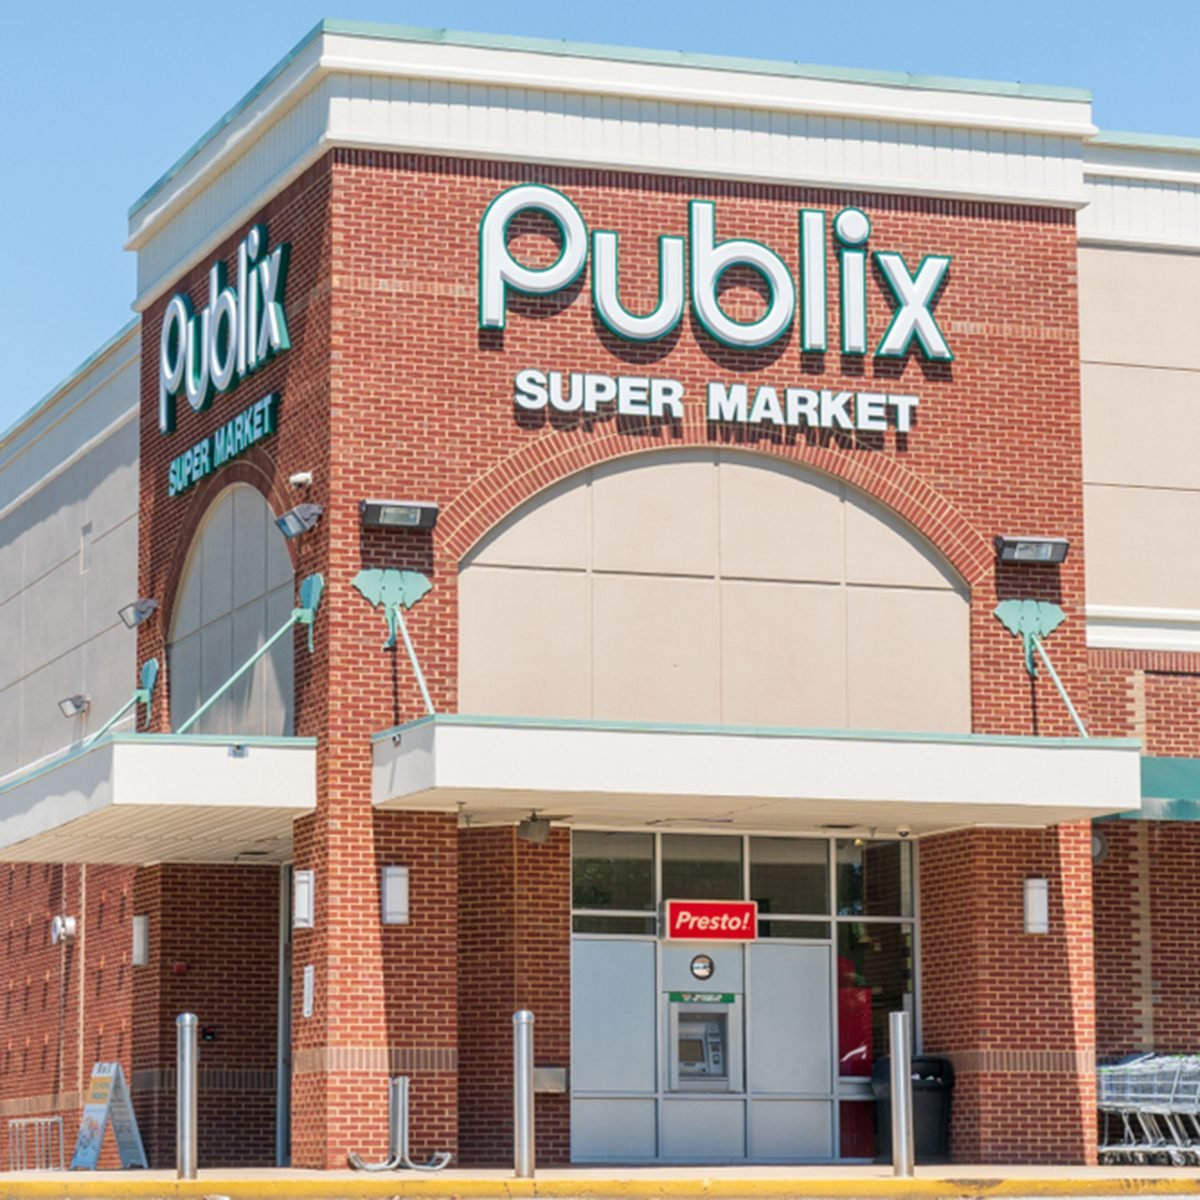 Publix grocery store exterior and logo.